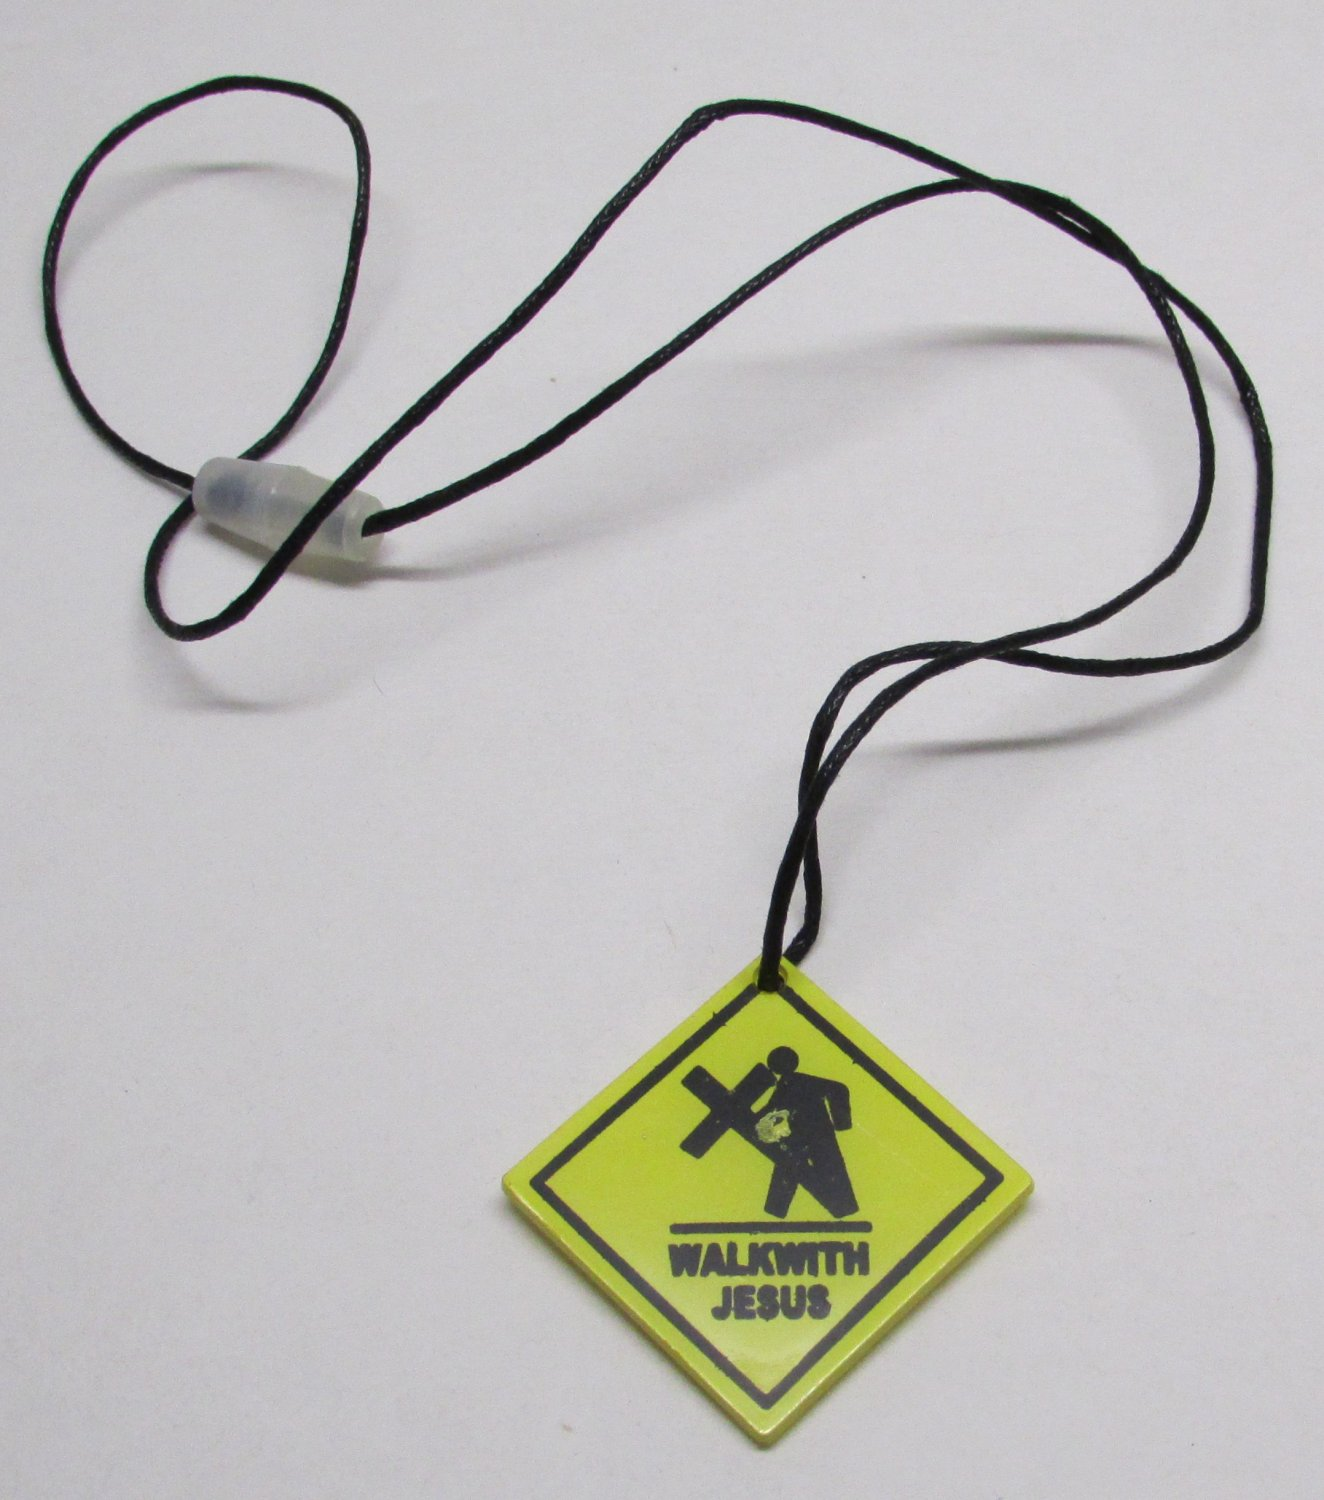 WALK WITH JESUS Street Sign Unlatchable NECKLACE NEW